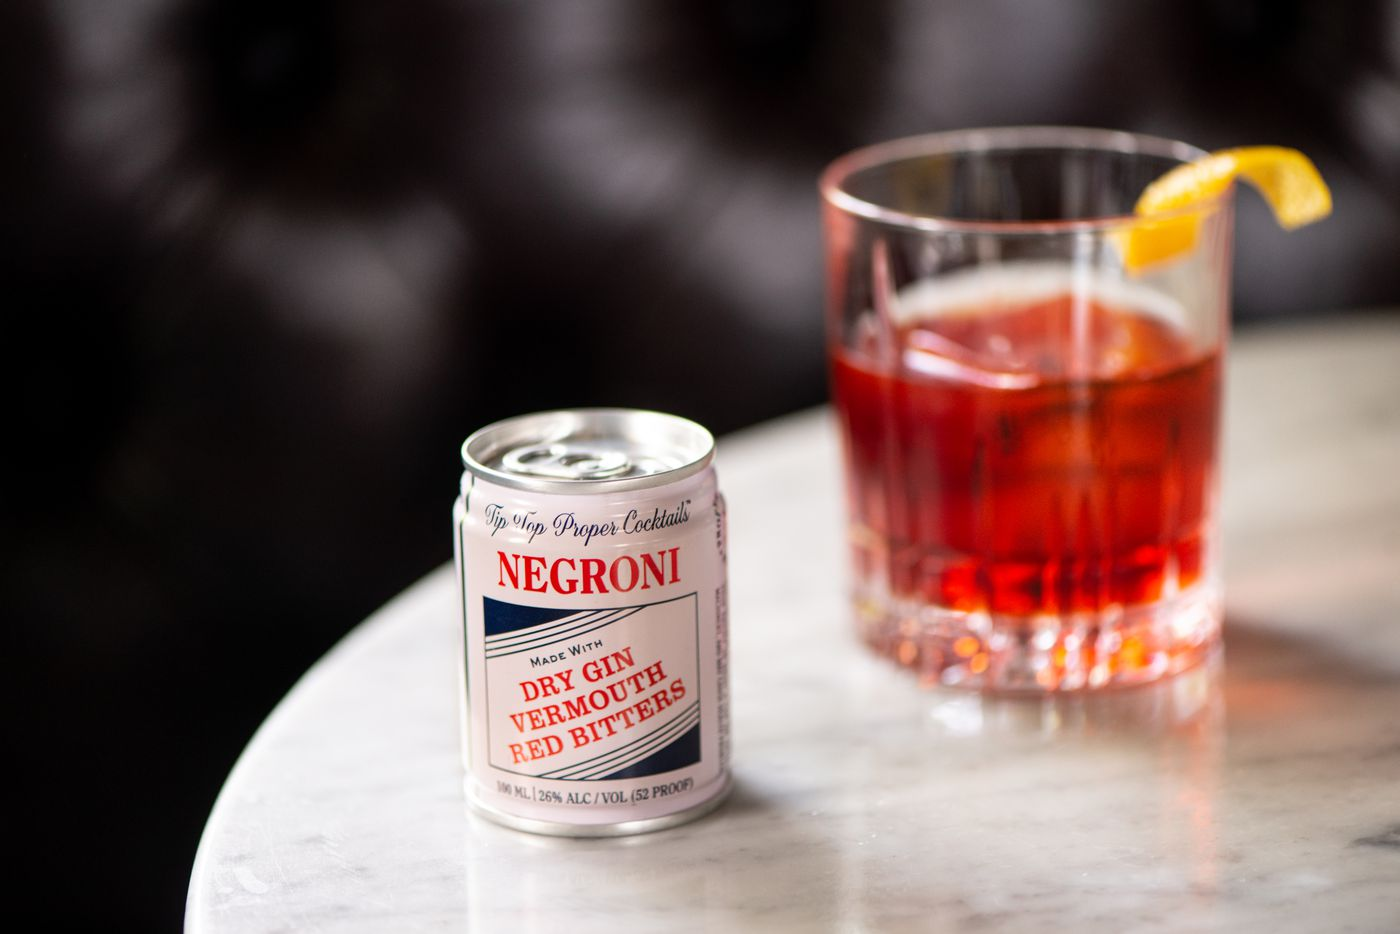 2. Tip Top Negroni